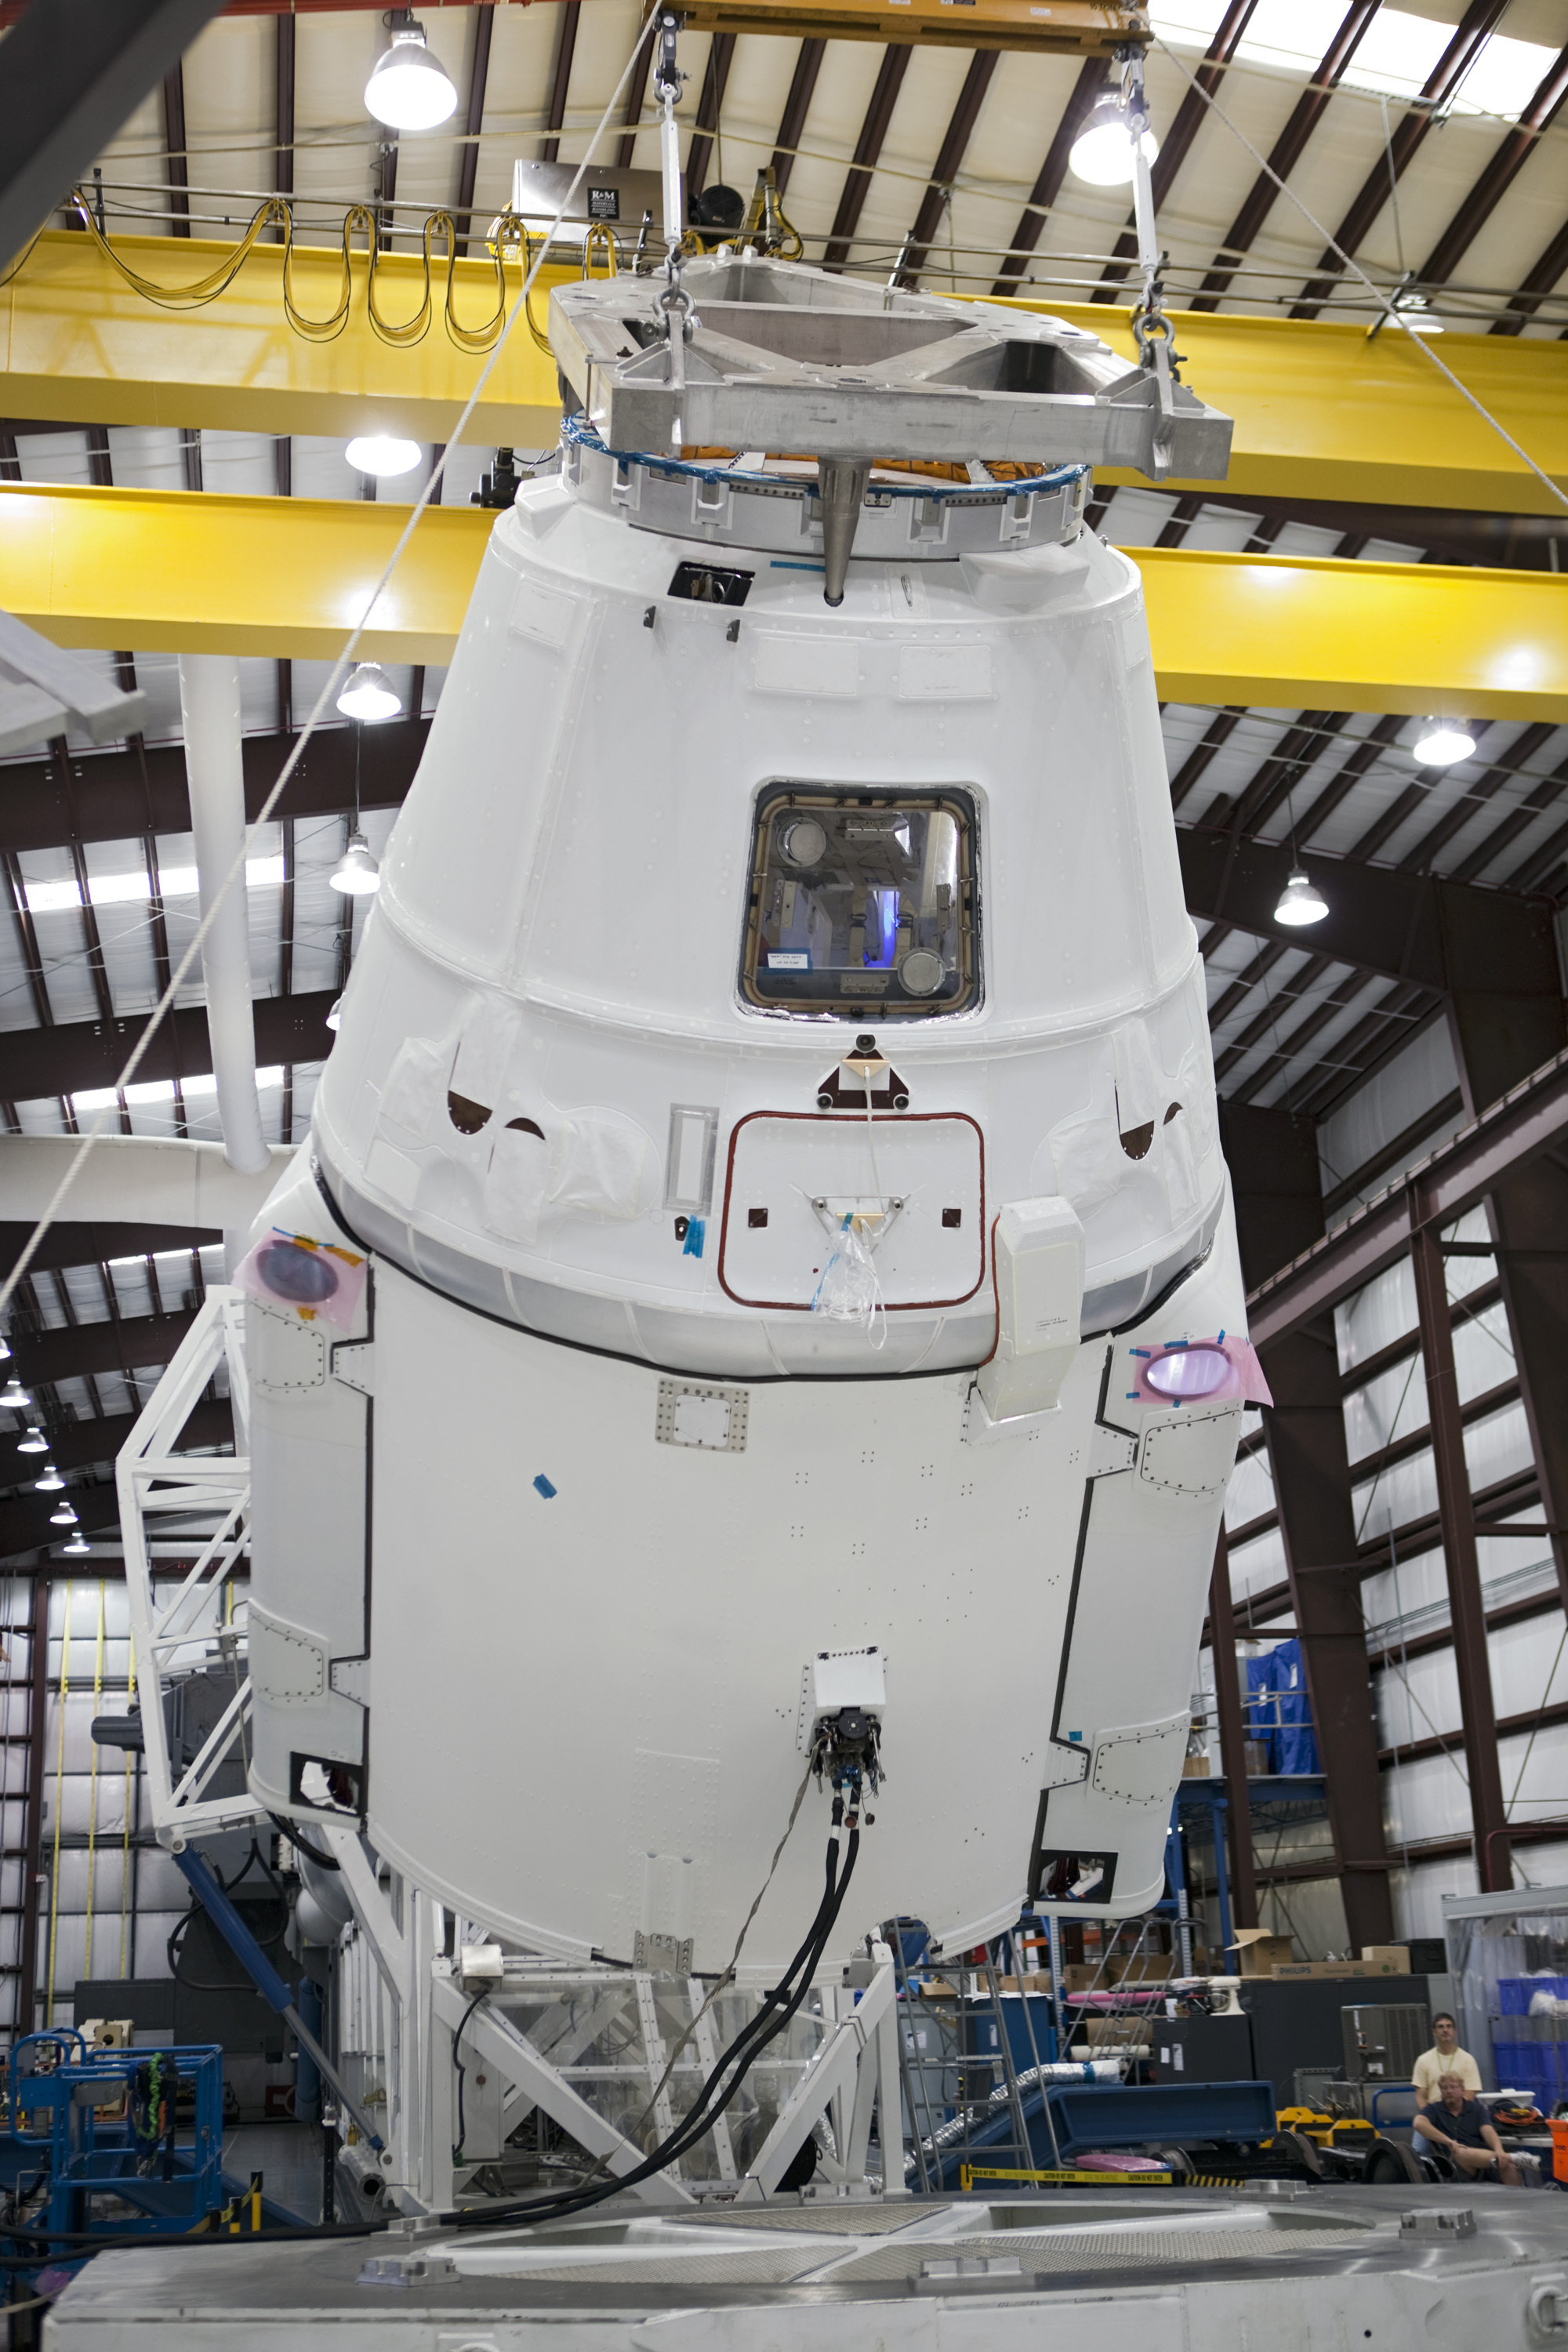 Dragon Spacecraft and Falcon 9